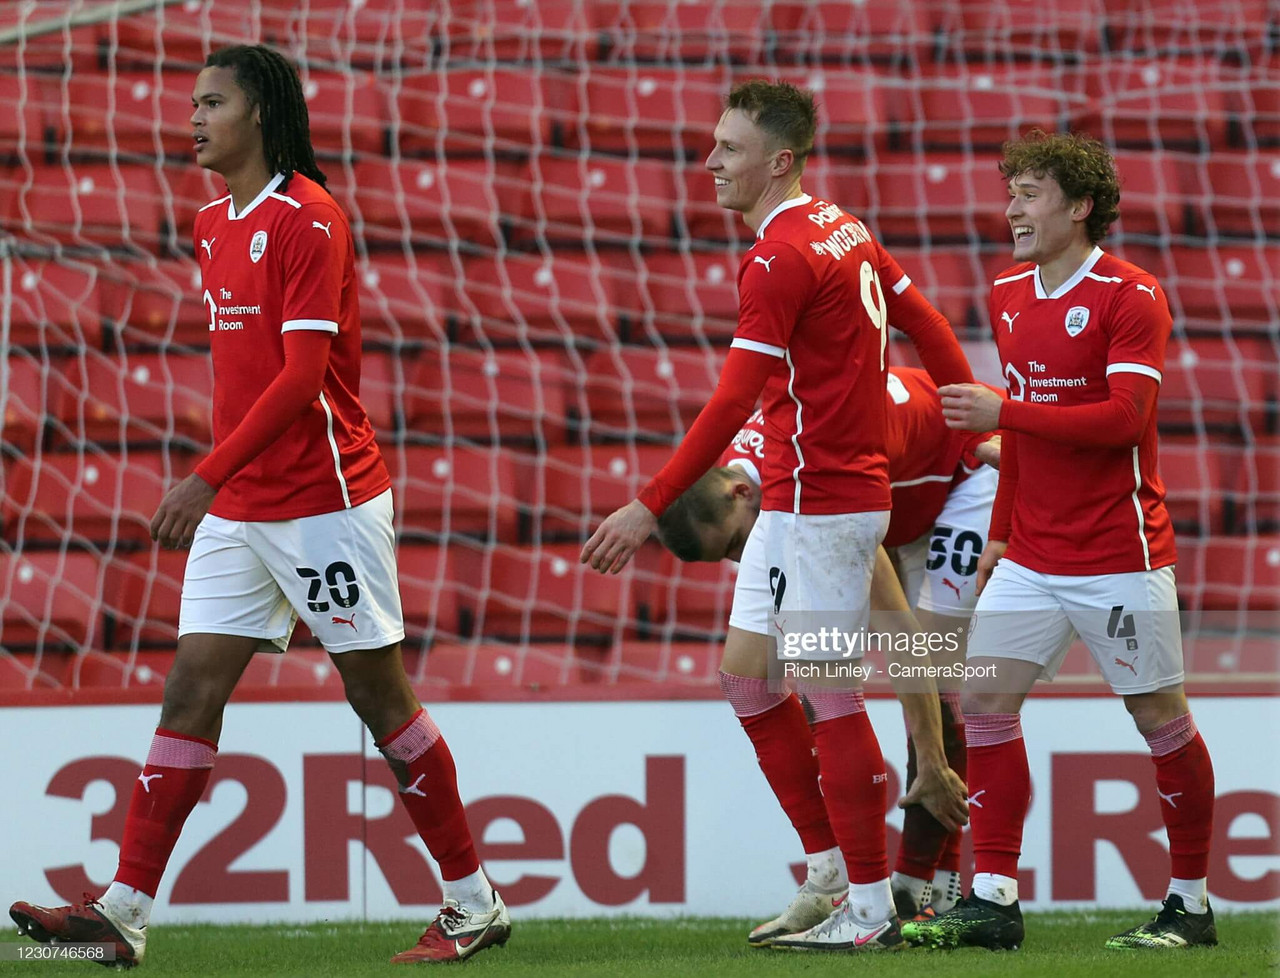 BARNSLEY, ENGLAND - JANUARY 23: Callum Styles (right) celebrates scoring the opening goal during the The Emirates FA Cup Fourth Round match between Barnsley and Norwich City at Oakwell Stadium on January 23, 2021 in Barnsley, England. (Photo by Rich Linley - CameraSport via Getty Images)